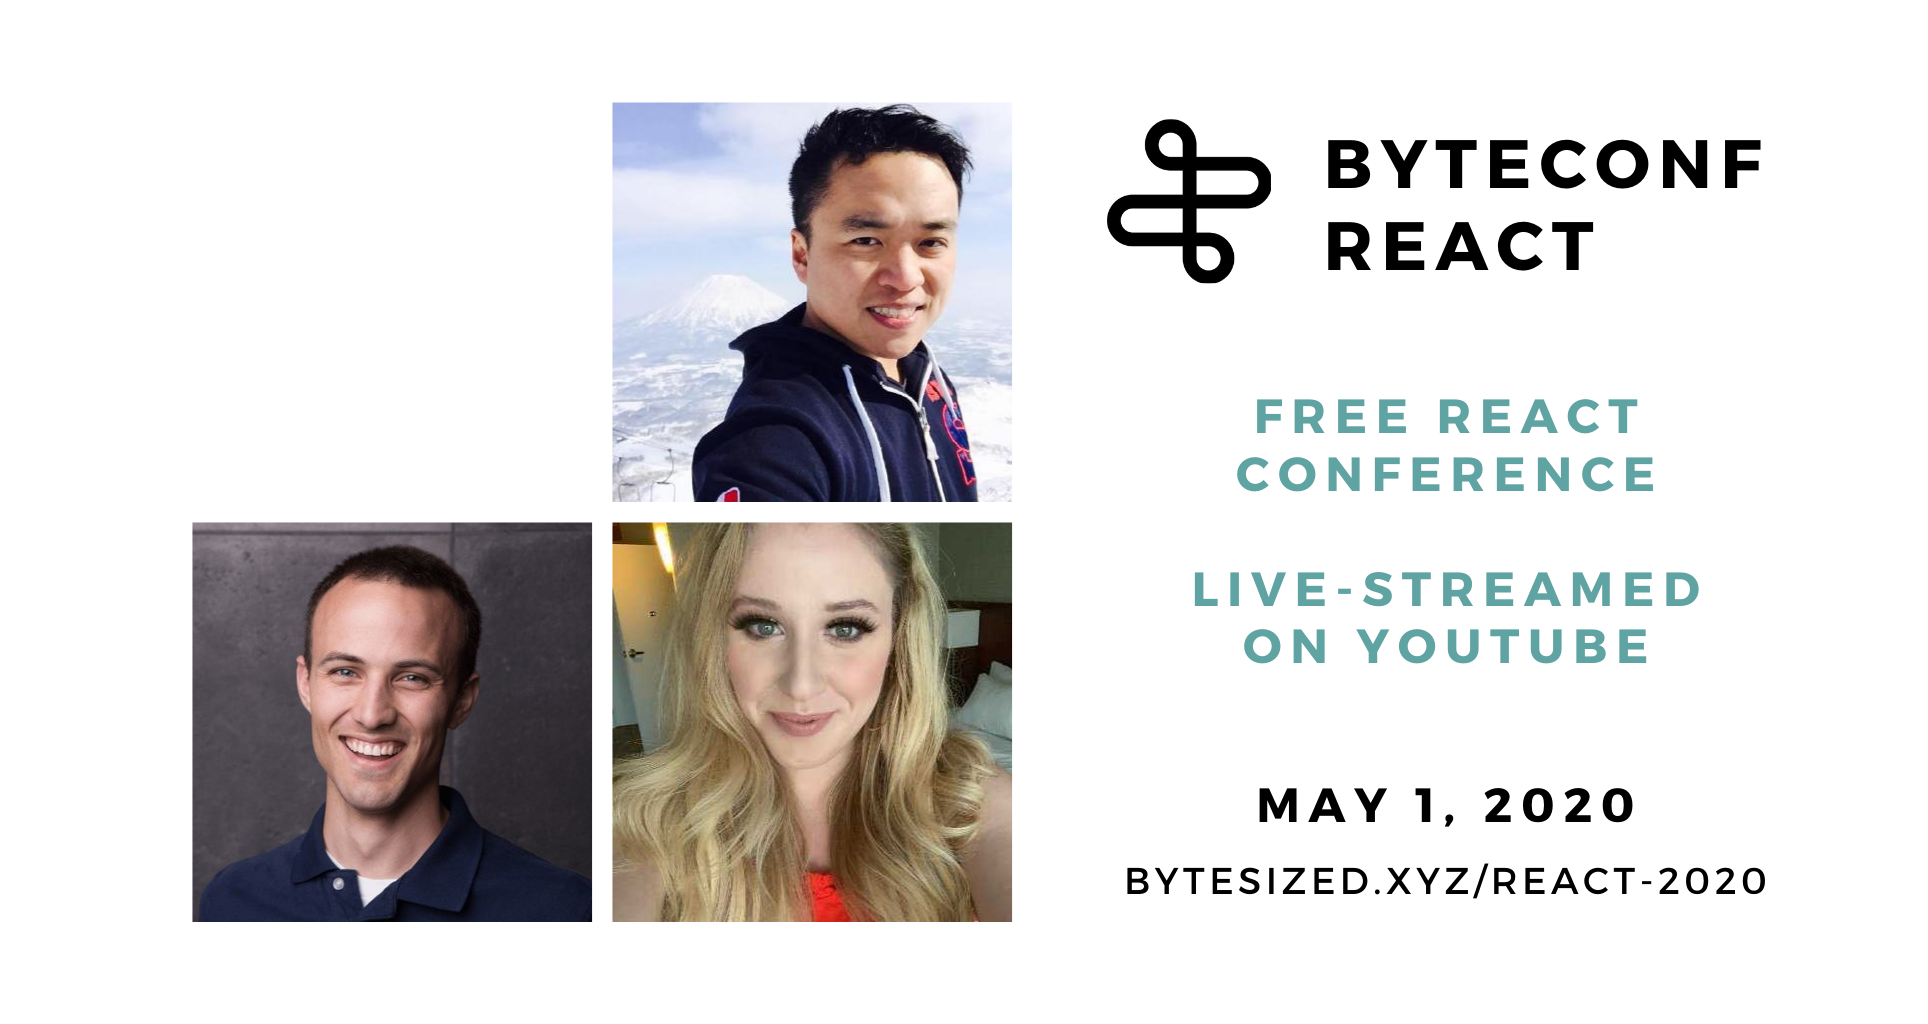 Announcing our first set of speakers for our free, remote React conf